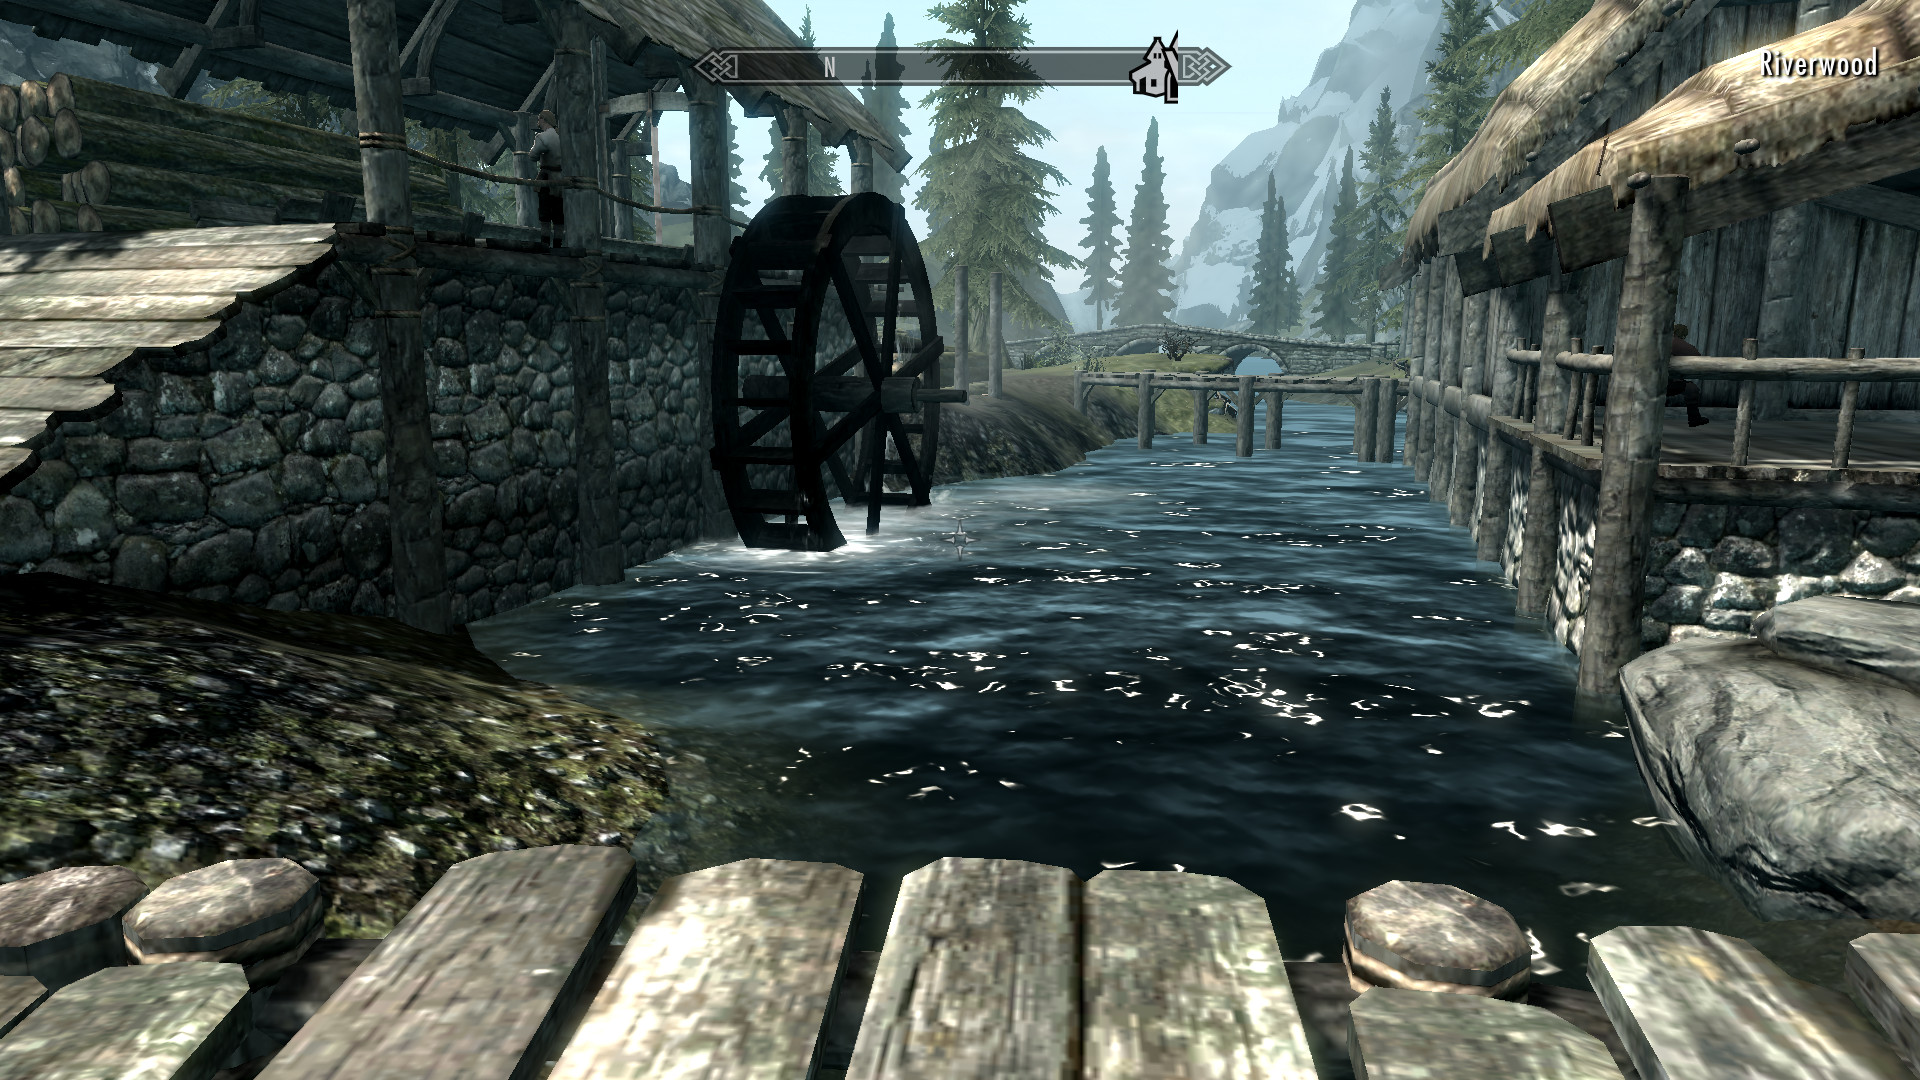 Skyrim Graphics Comparison - Video Games - Level1Techs Forums